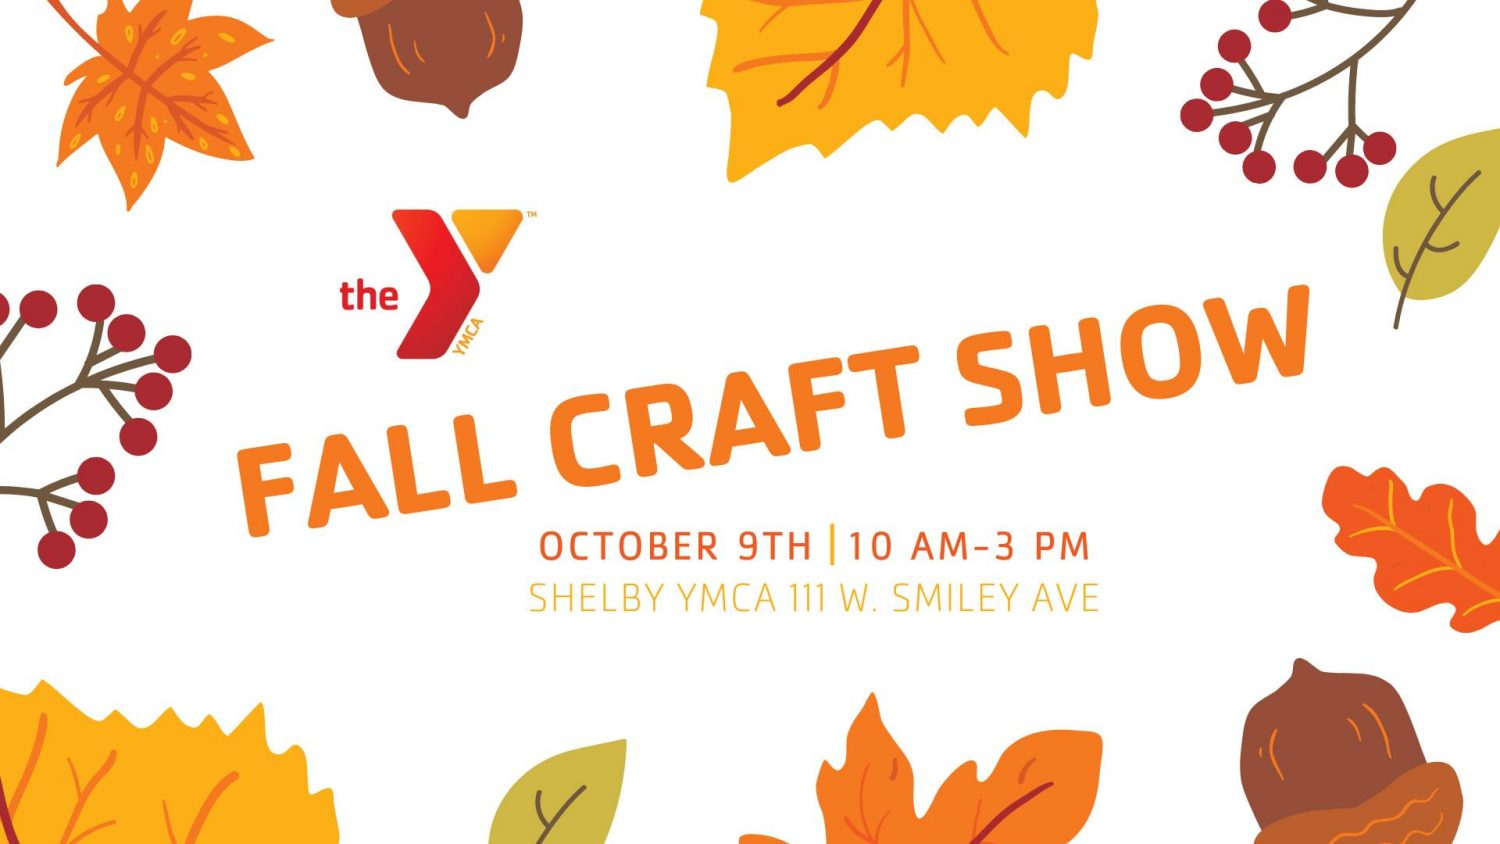 Fall Craft Show Shelby YMCA